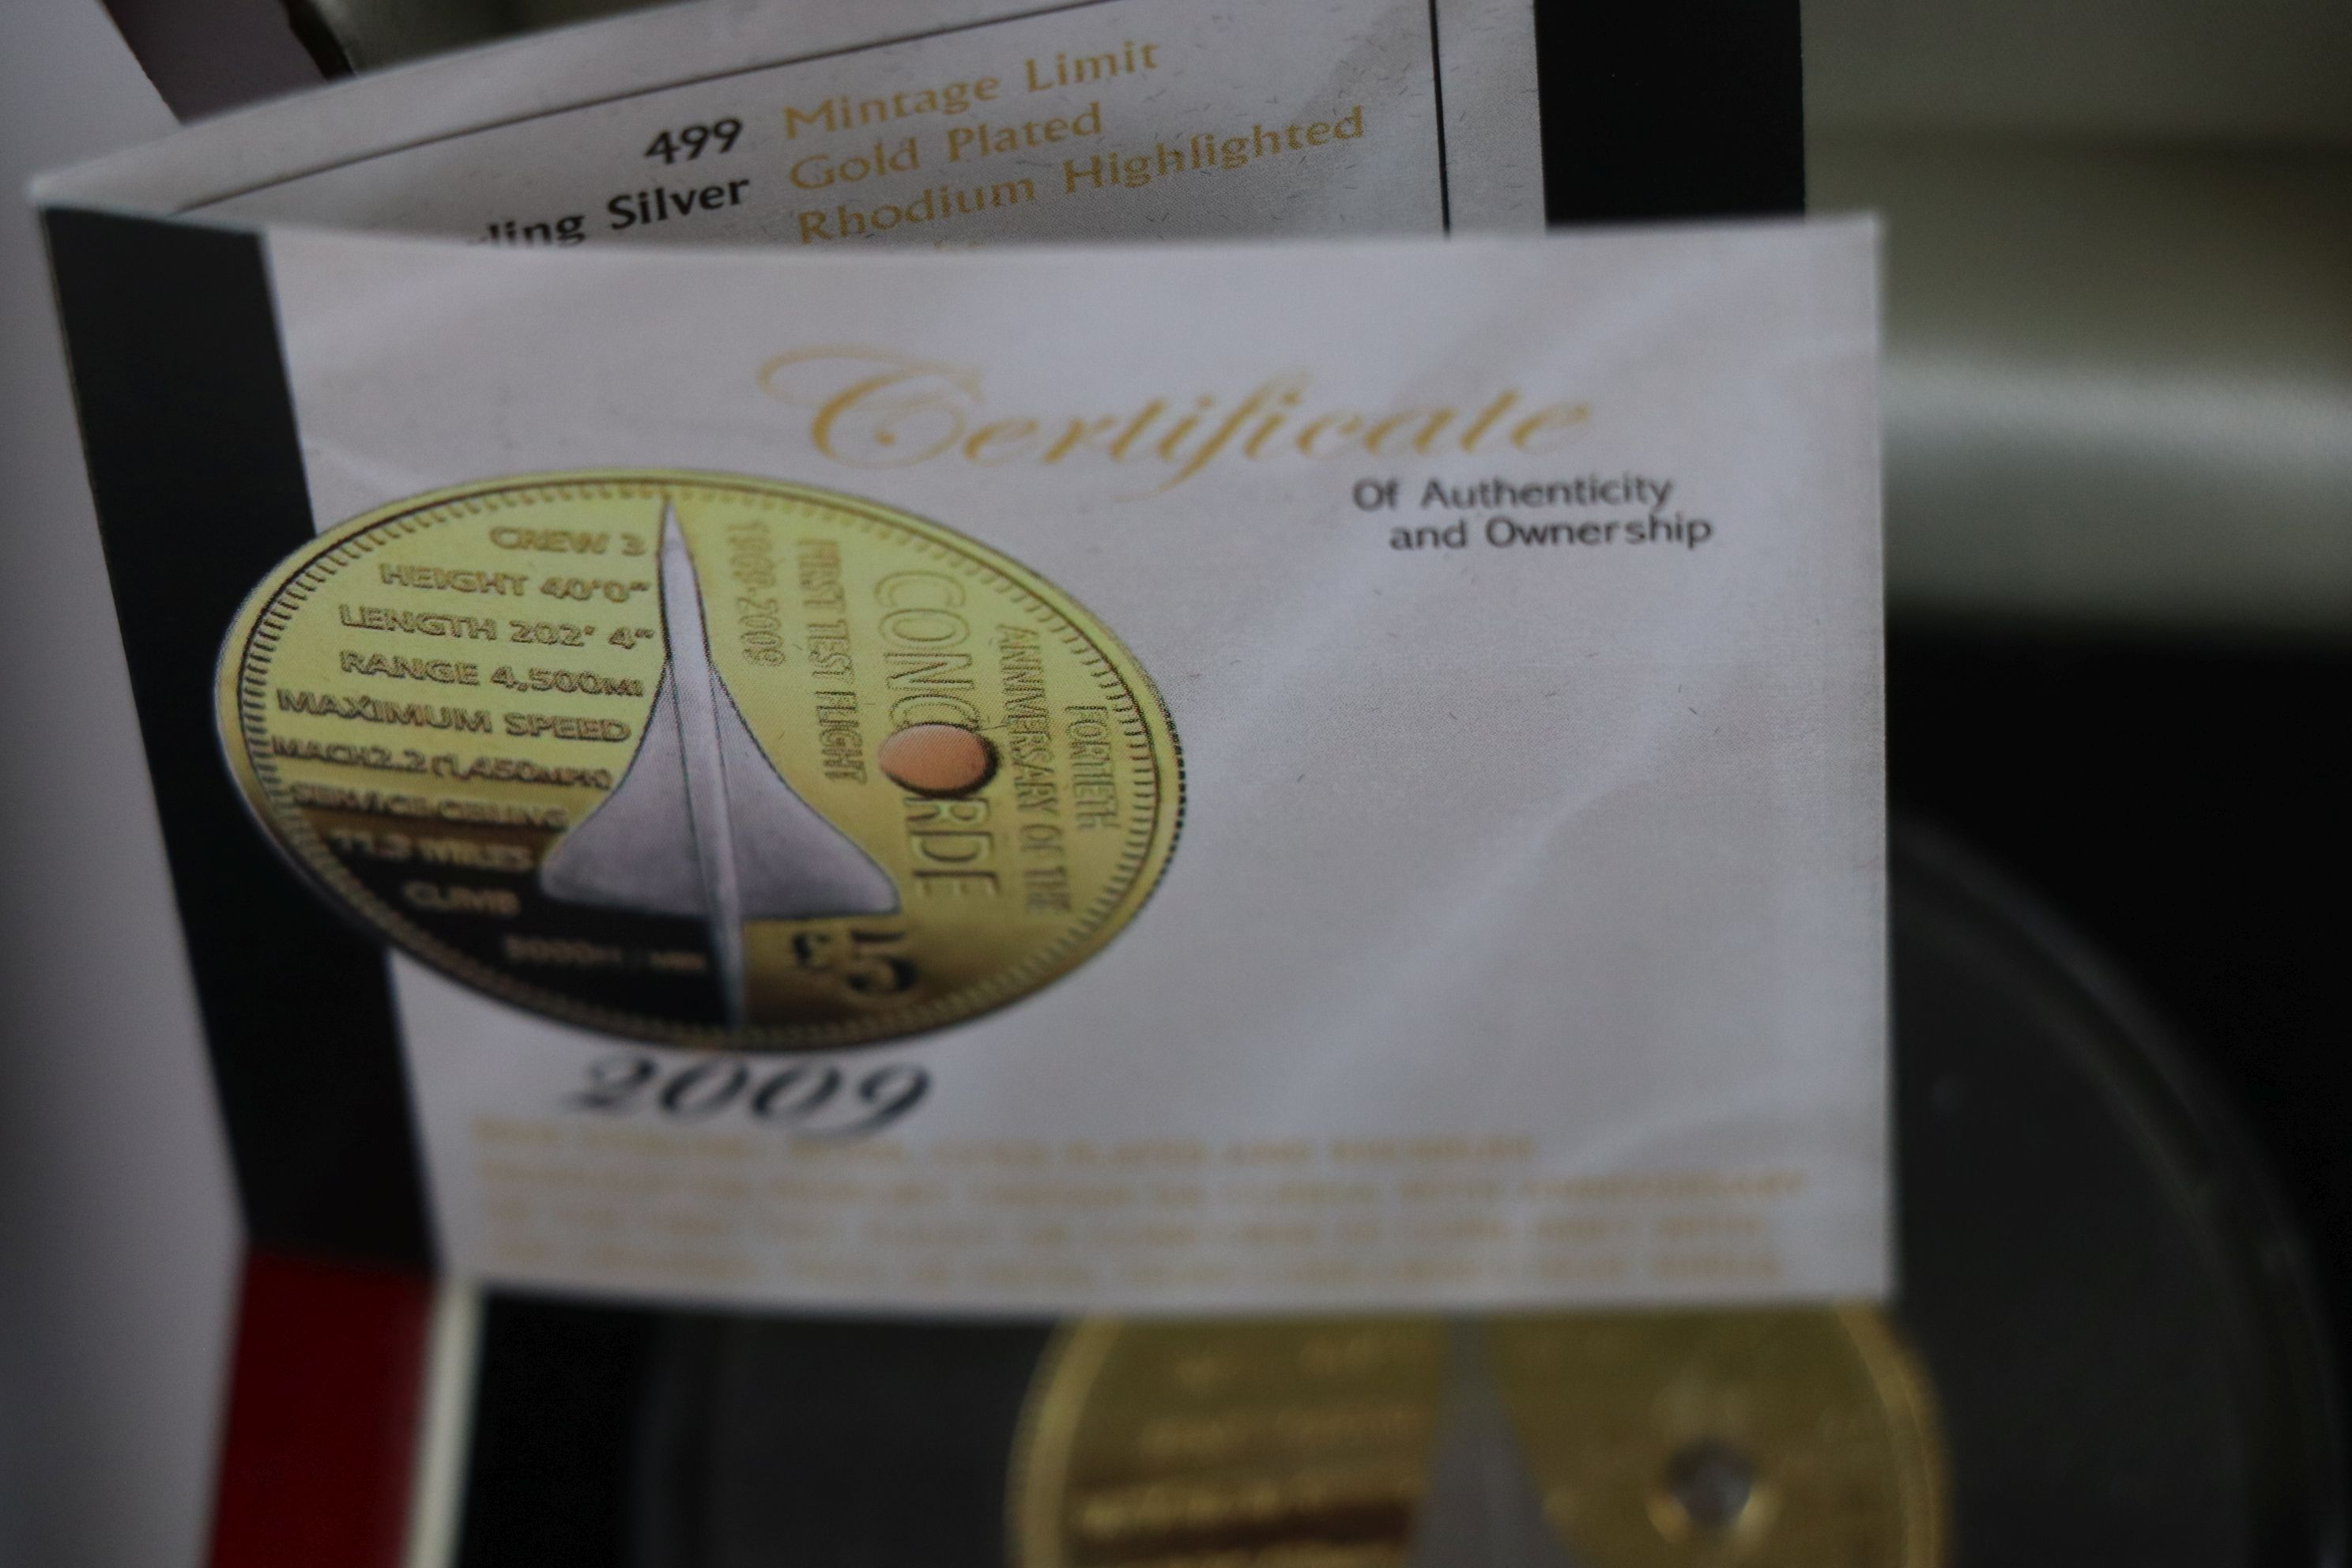 A cased Silver proof gold plated Concorde Piedfort £5 coin complete with C.O.A. together with a - Image 6 of 7